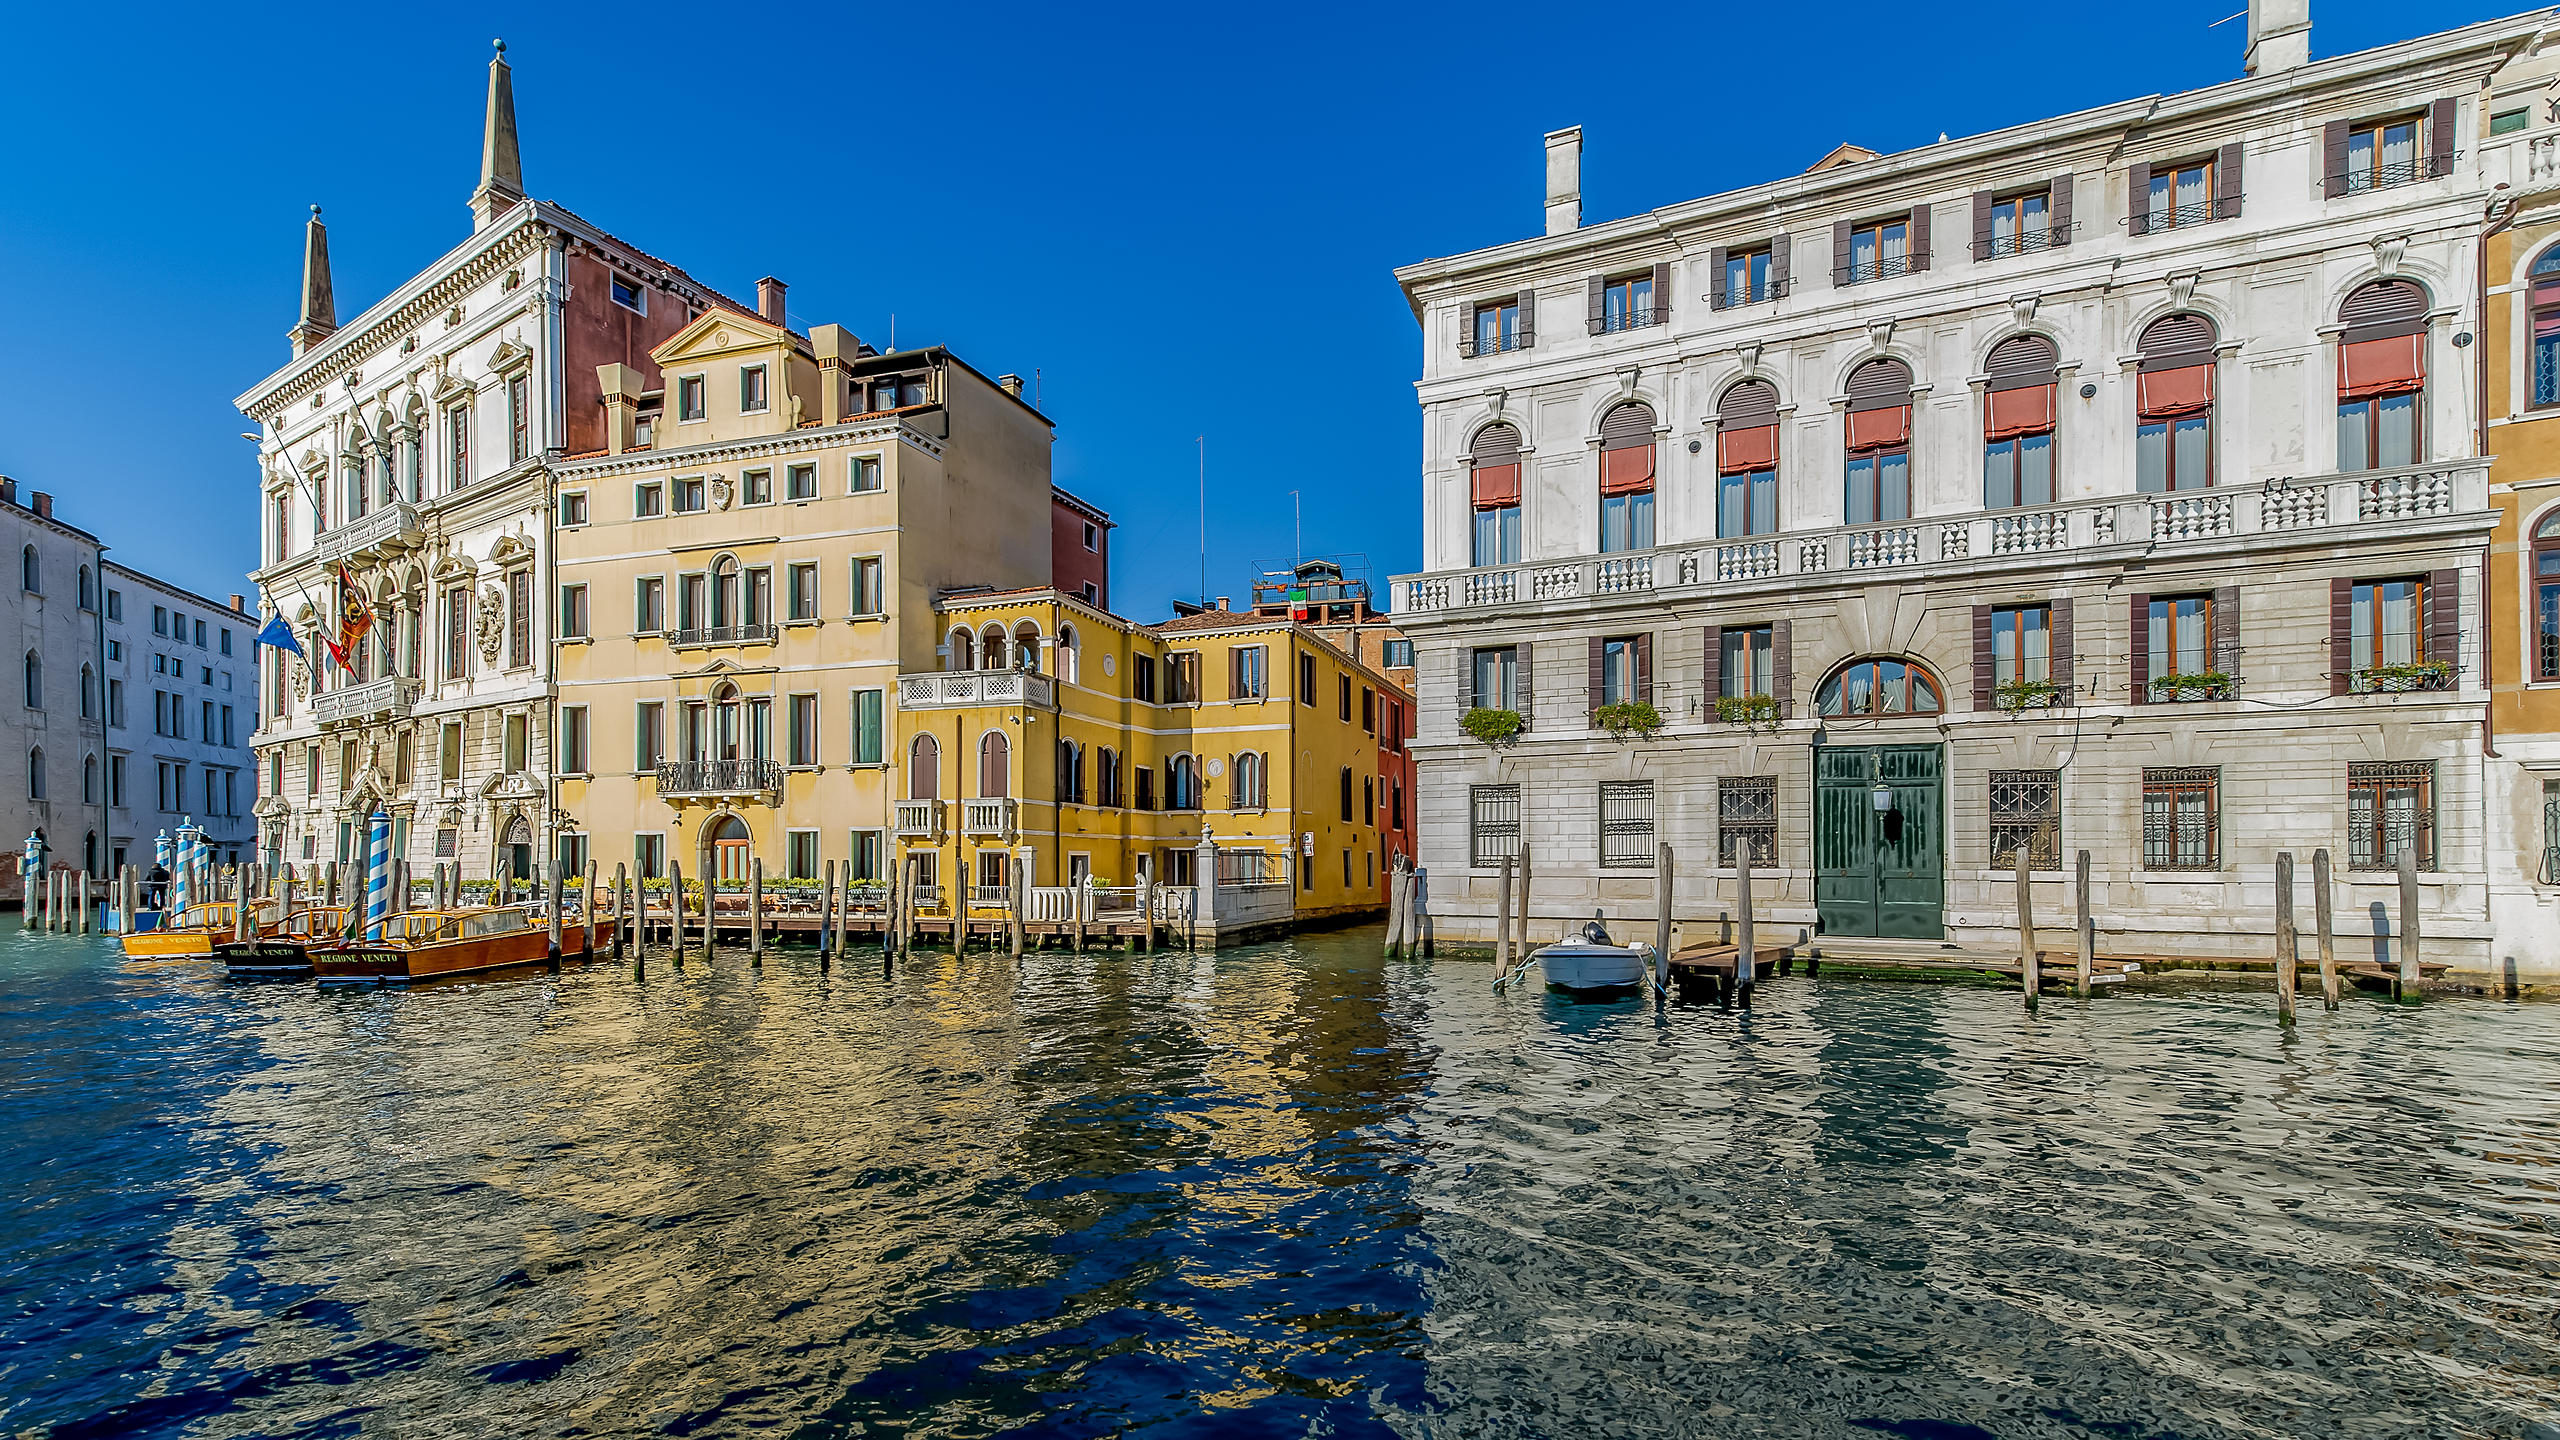 Palazzo Balbi on the Grand Canal, Venice